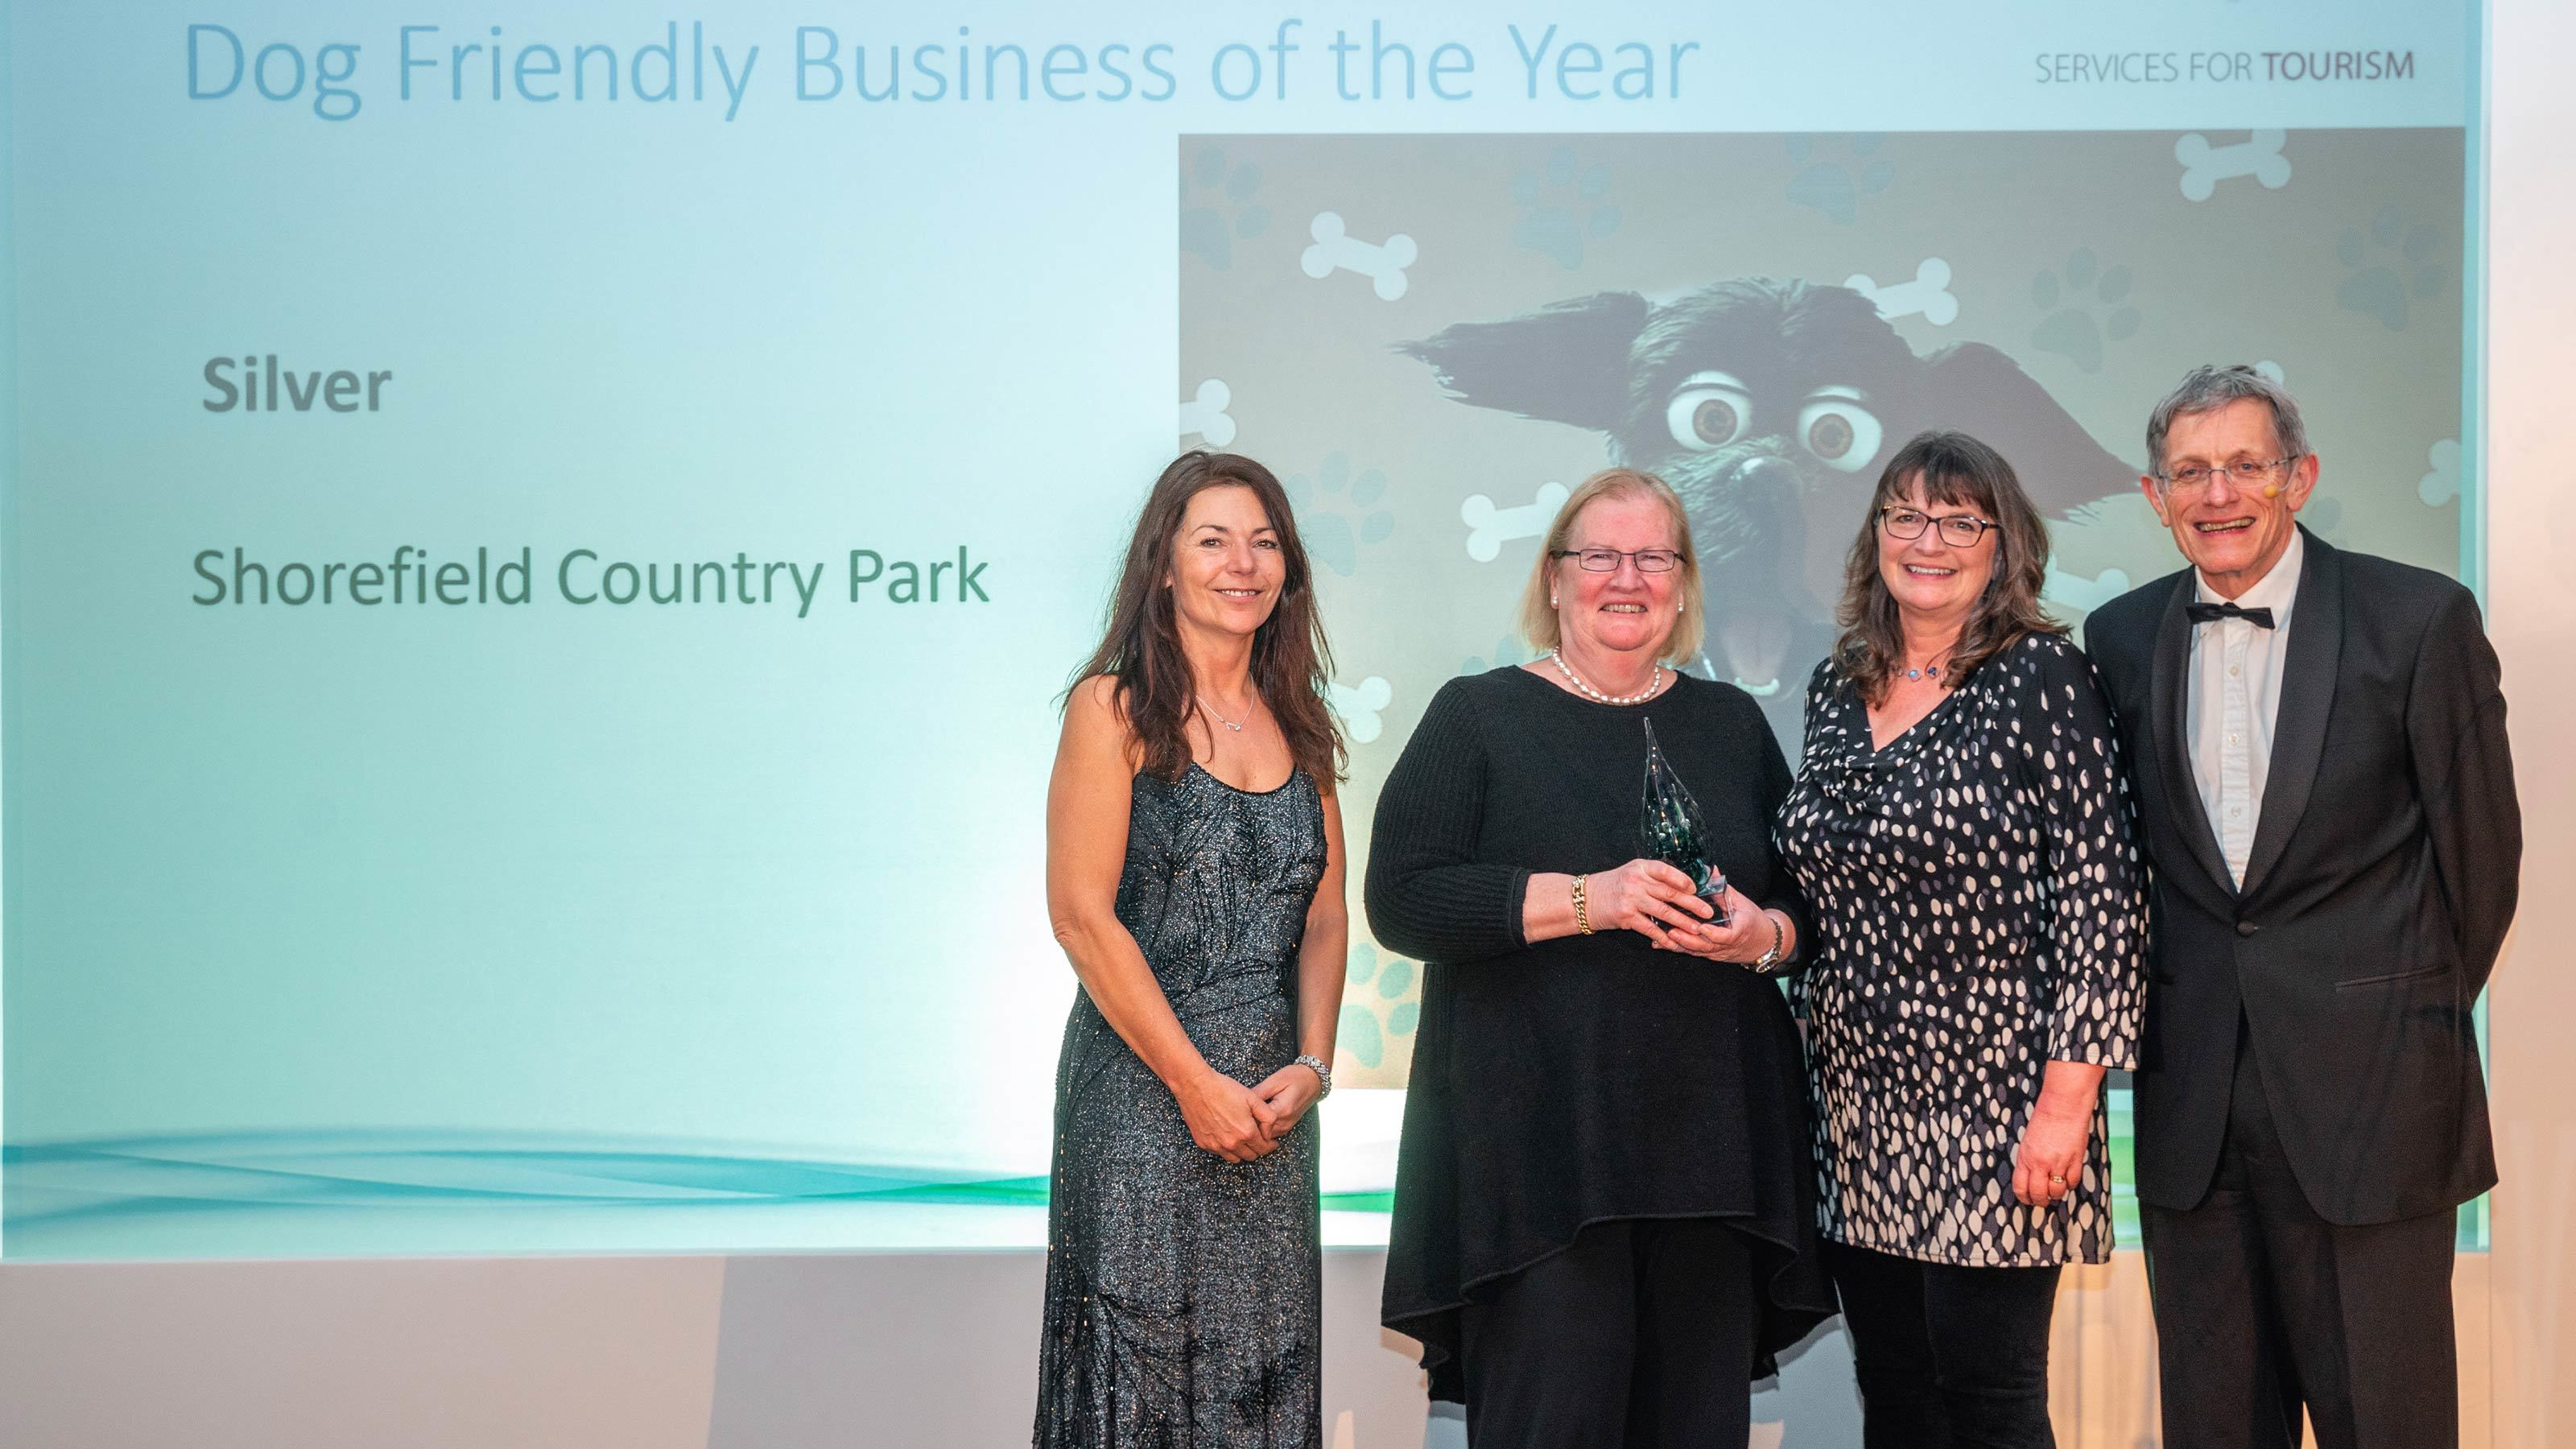 Dog-friendly-business-of-the-year-silver-award